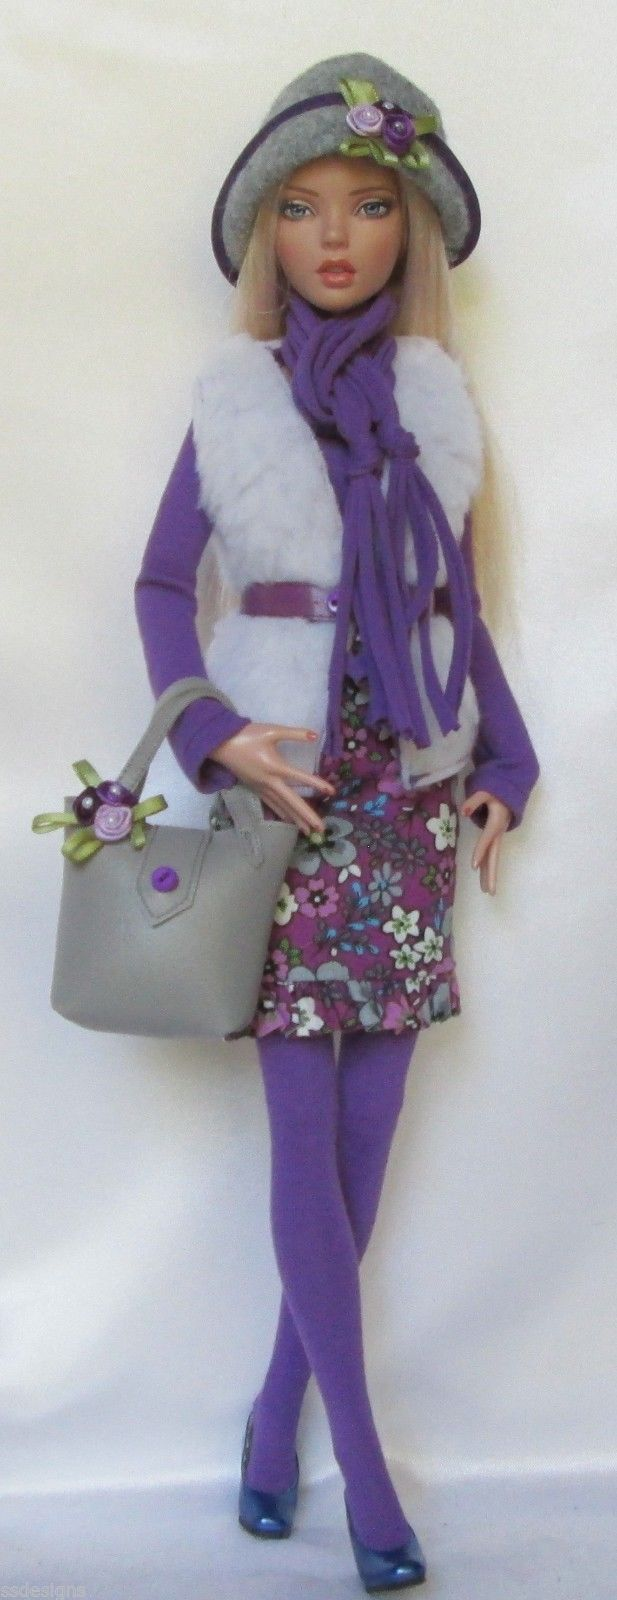 """Penelope's Purple Passion for 16"""" Tonner Deja Vu Made by Ssdesigns   eBay"""